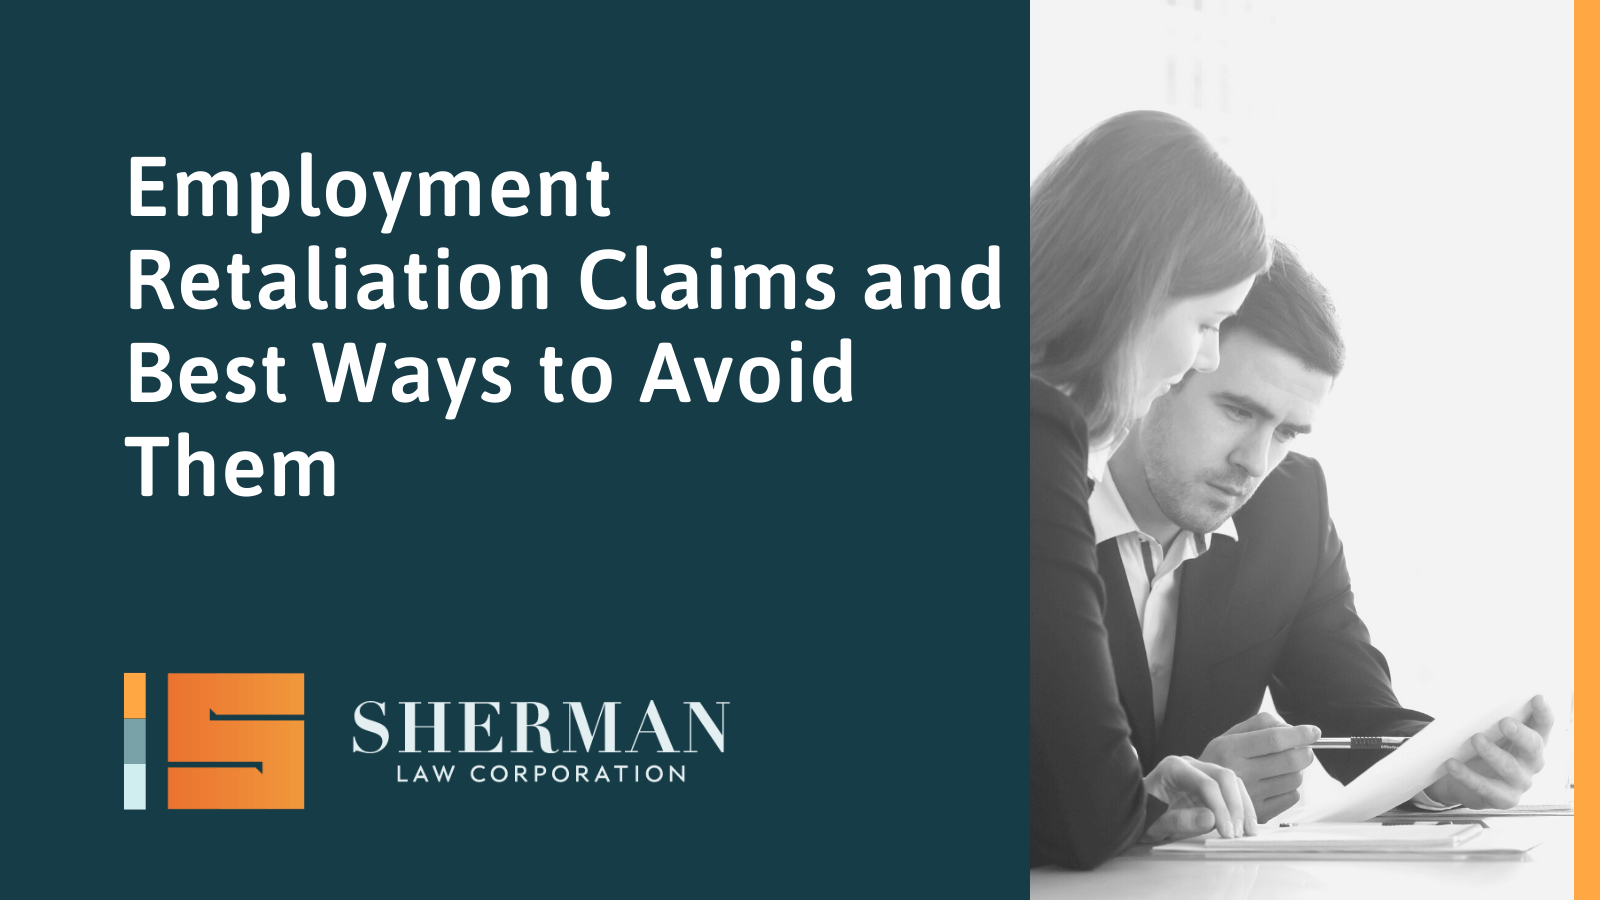 Employment Retaliation Claims and Best Ways to Avoid Them- california employment lawyer - sherman law corporation